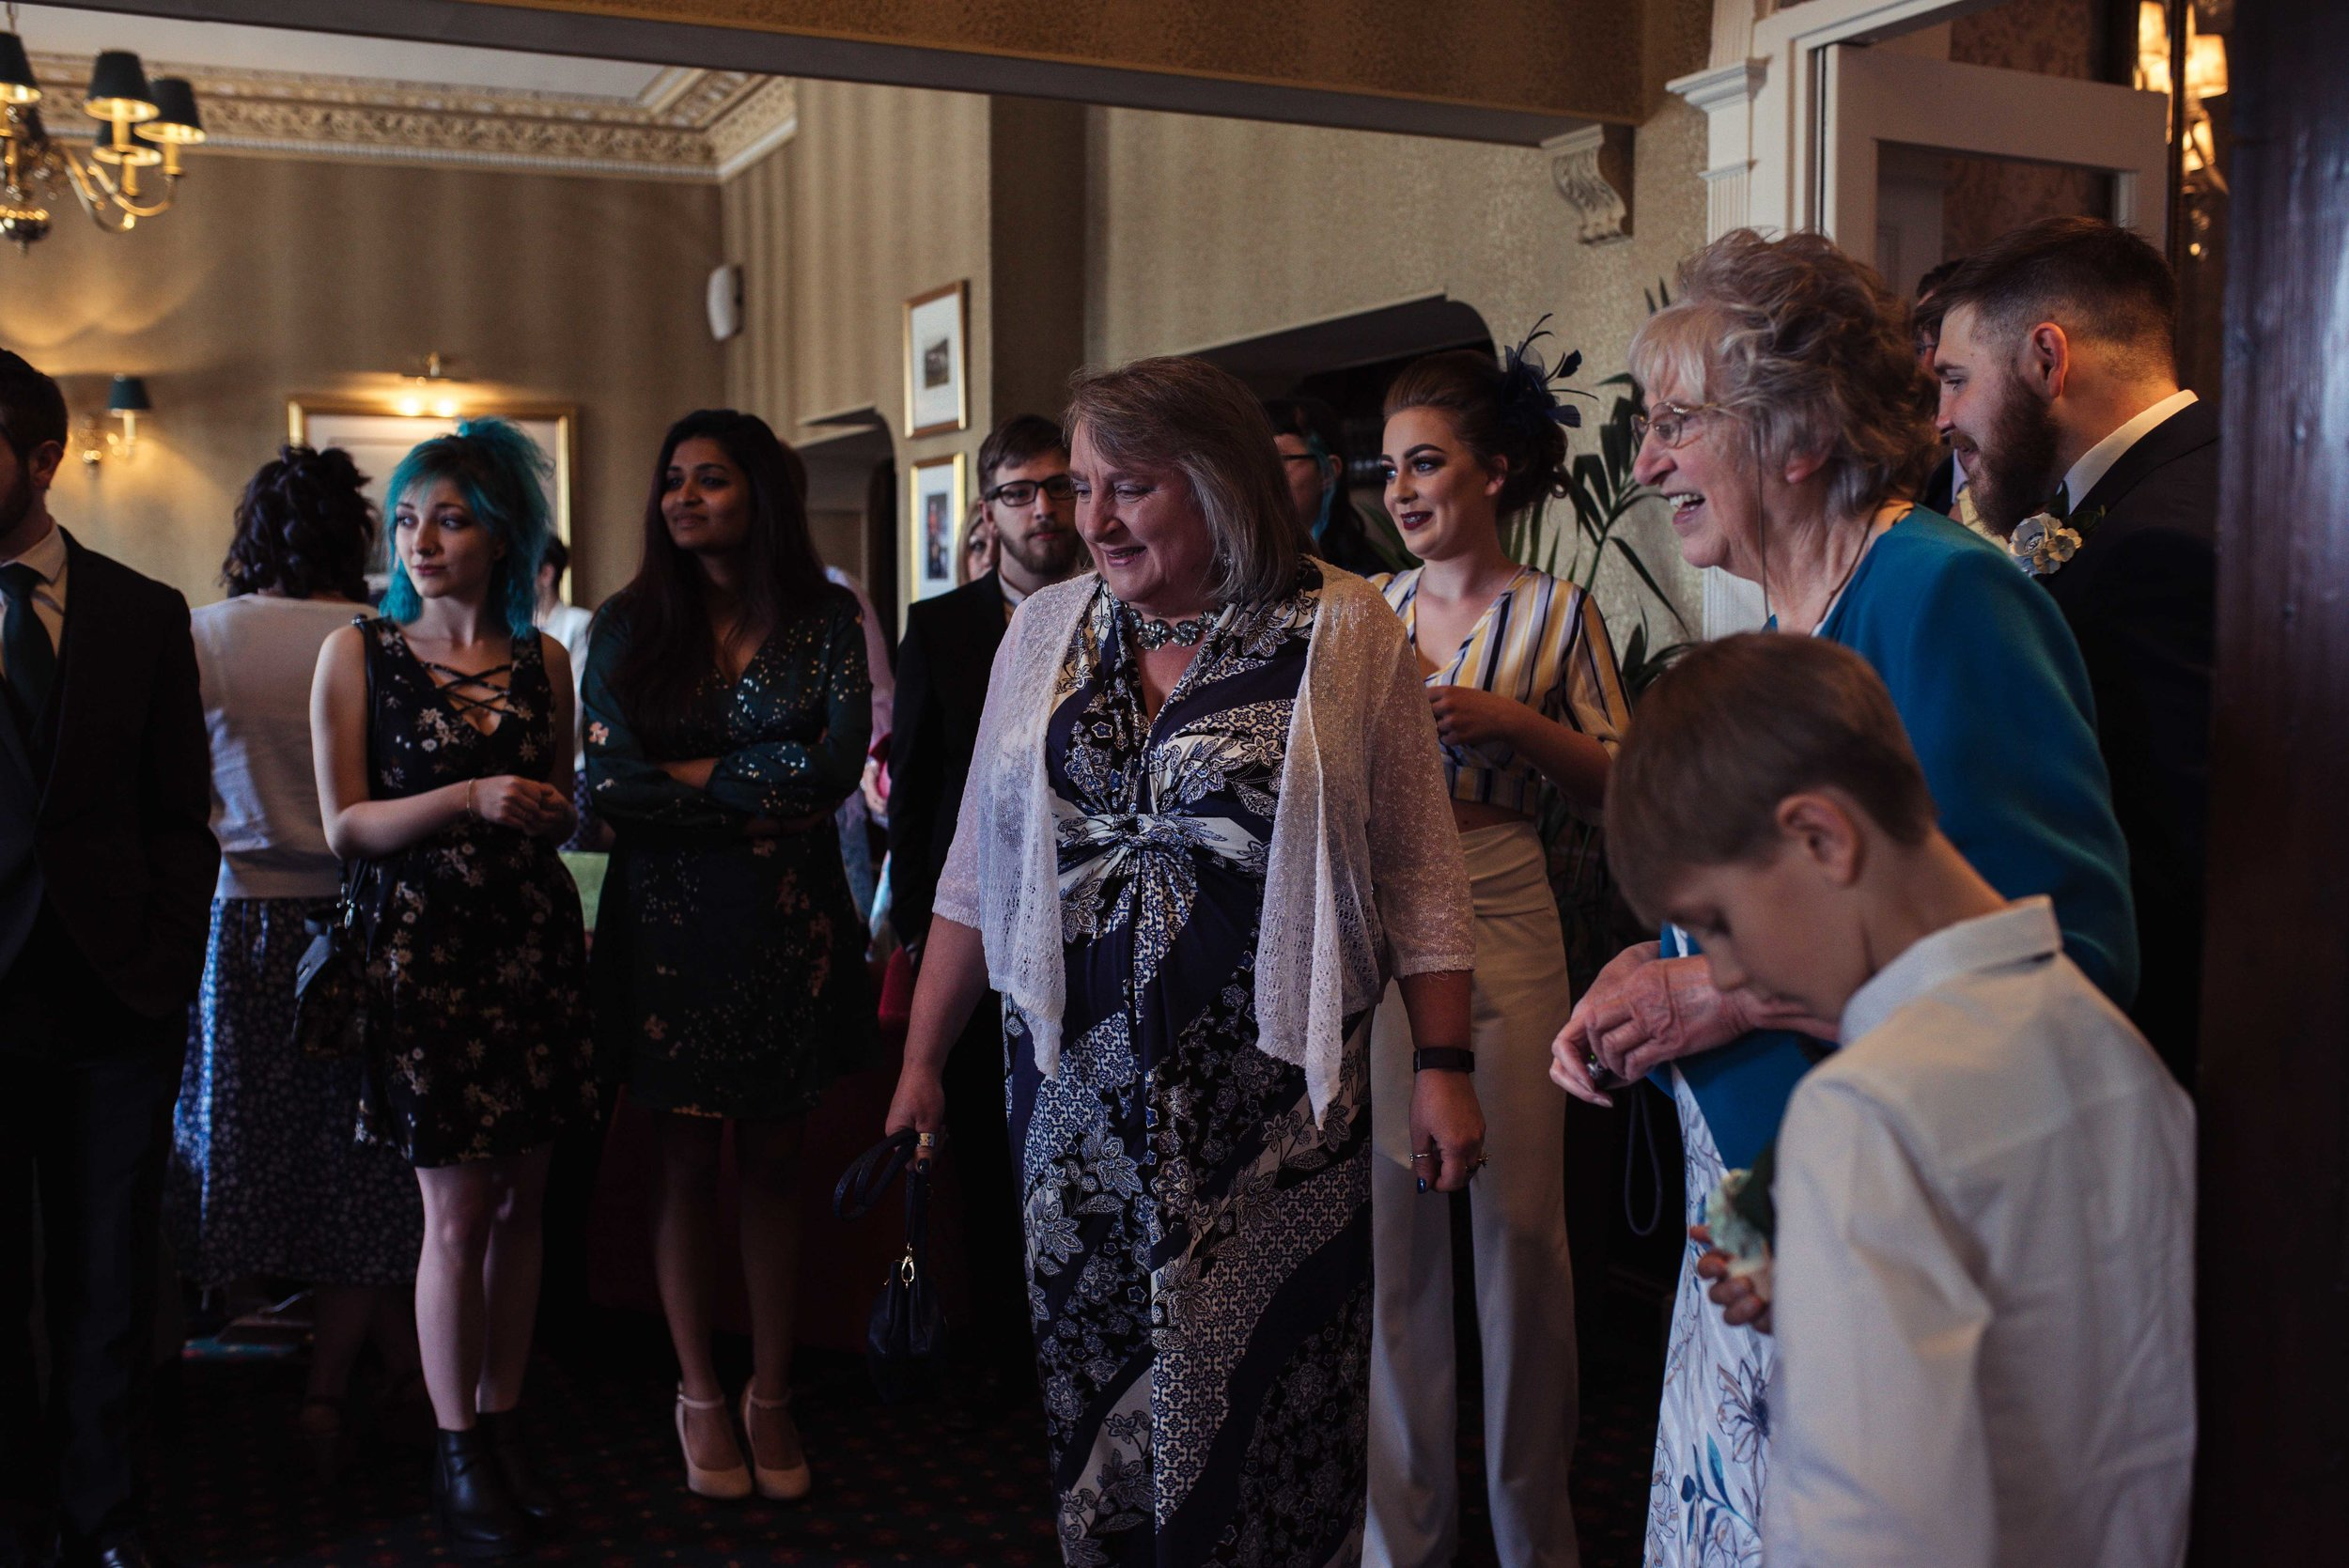 Wedding guests gather to see the groom in his suit for the first time